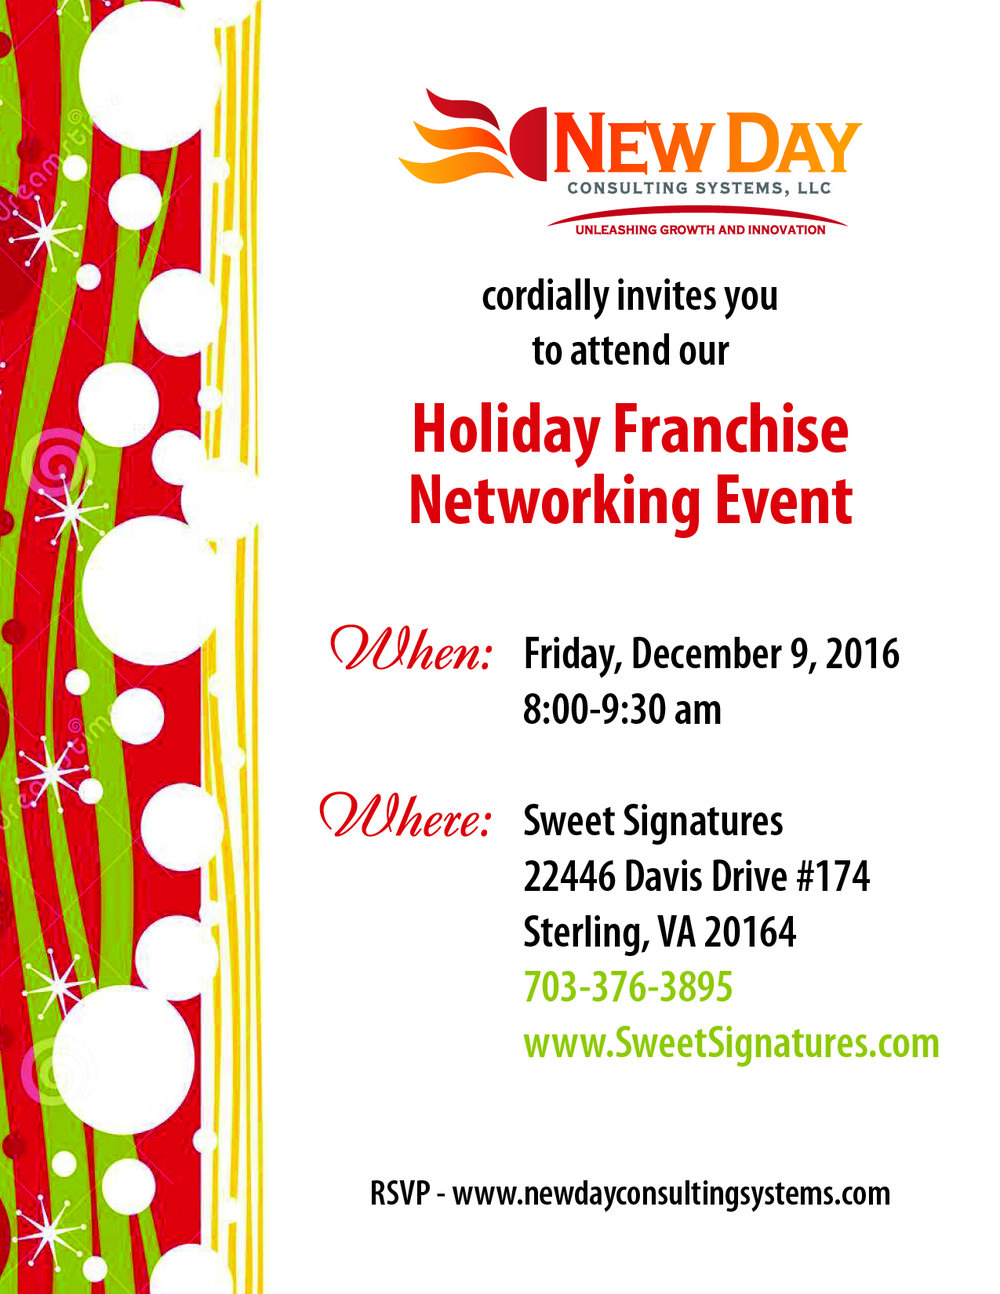 networking event flyers